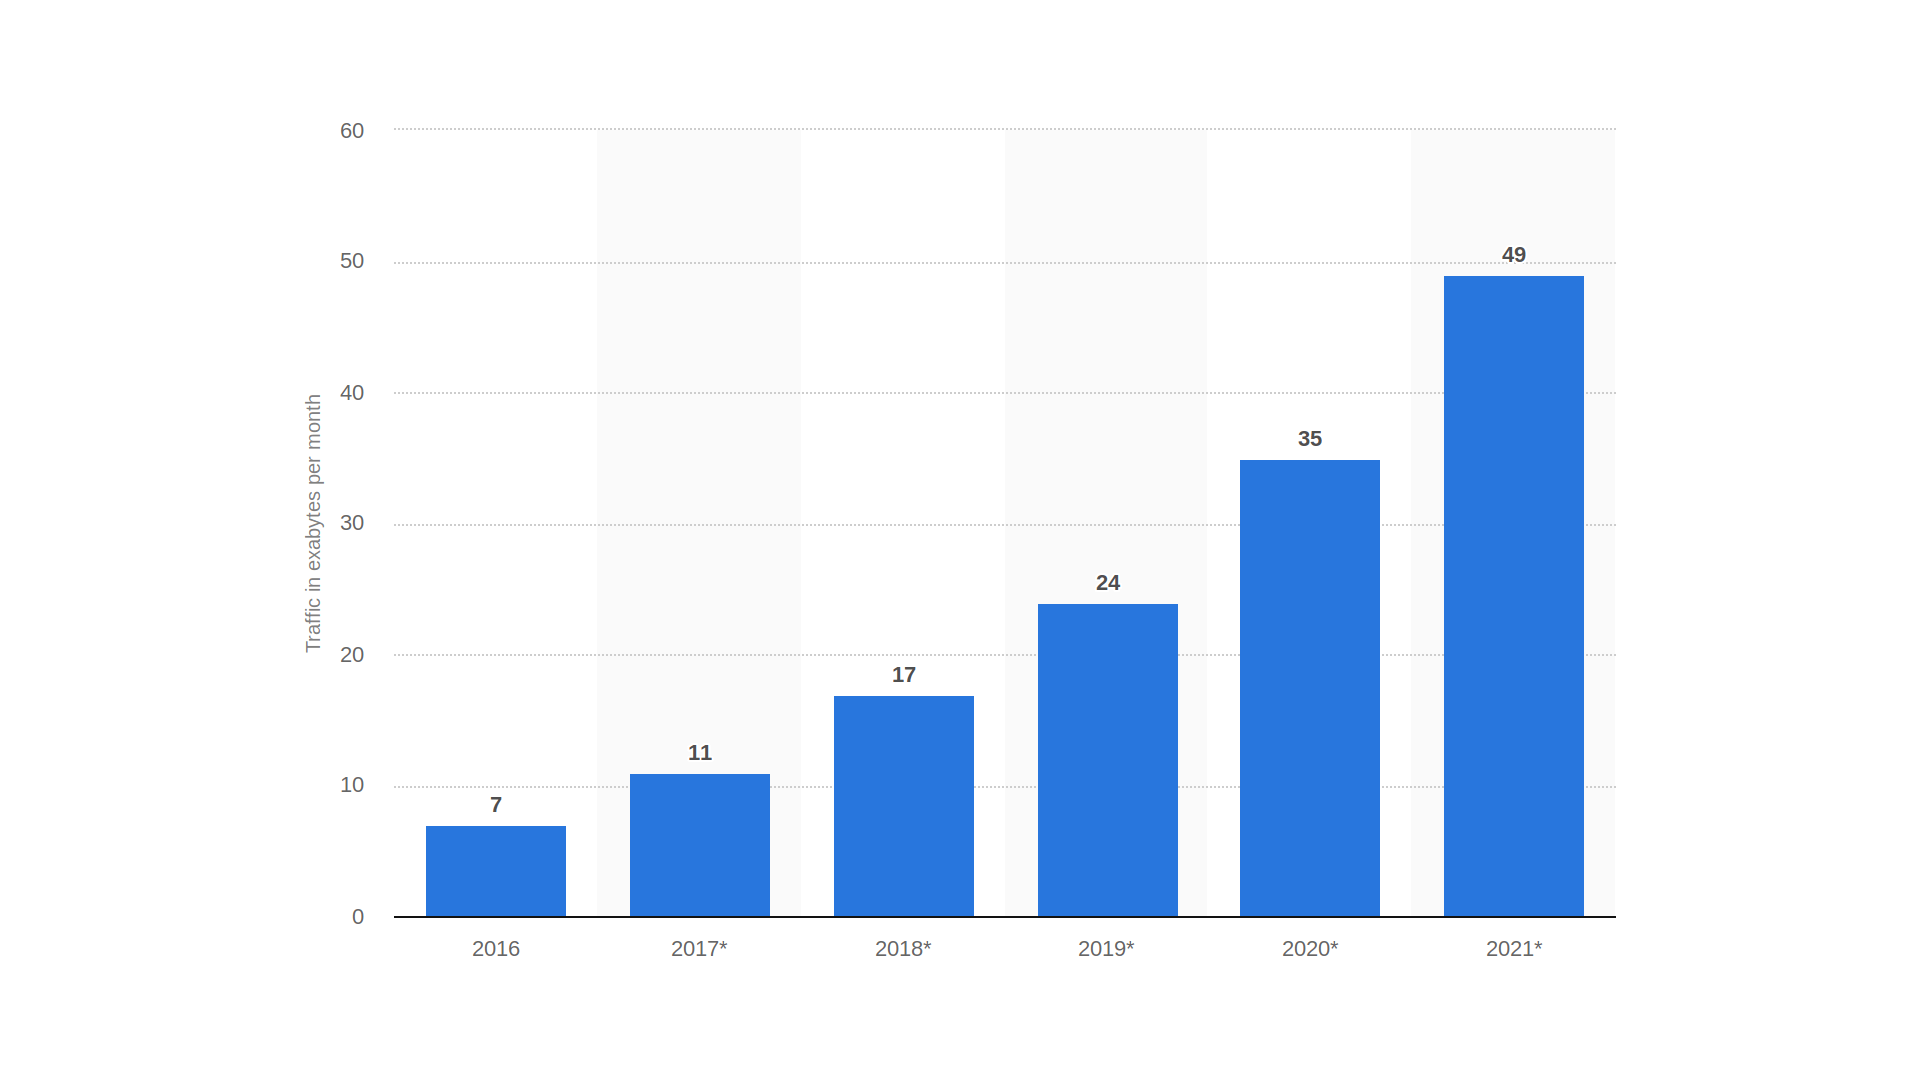 Global mobile data traffic is forecast to increase 7 times between 2016 and 2021.